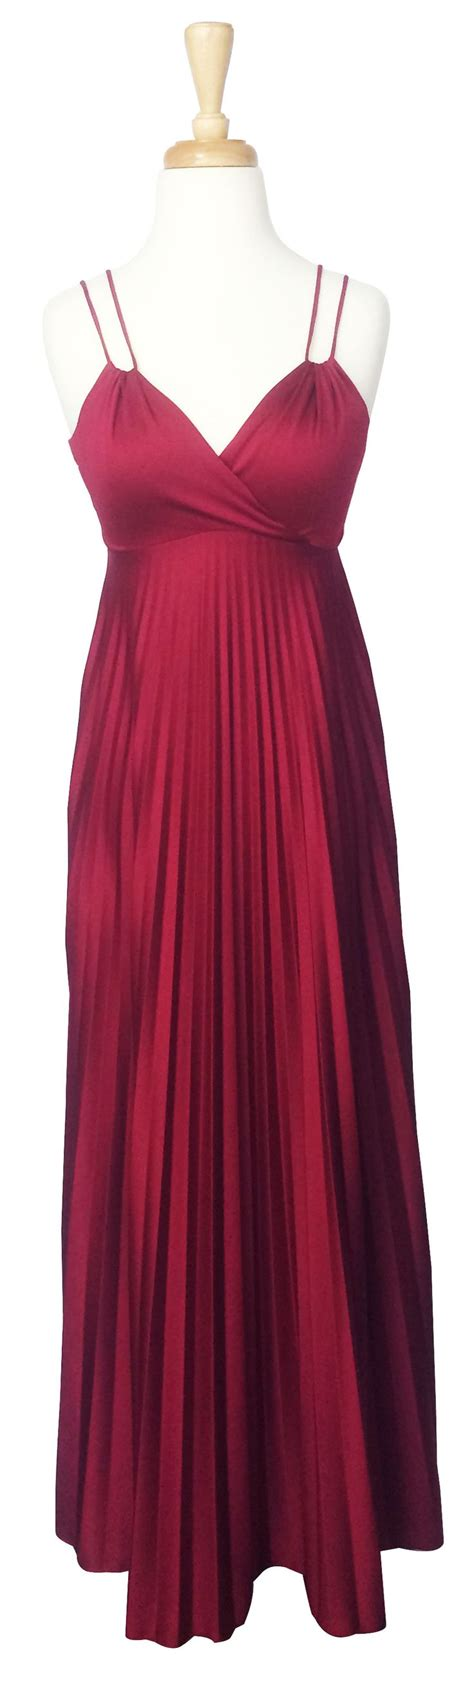 wine colored prom dresses the 25 best wine colored dresses ideas on